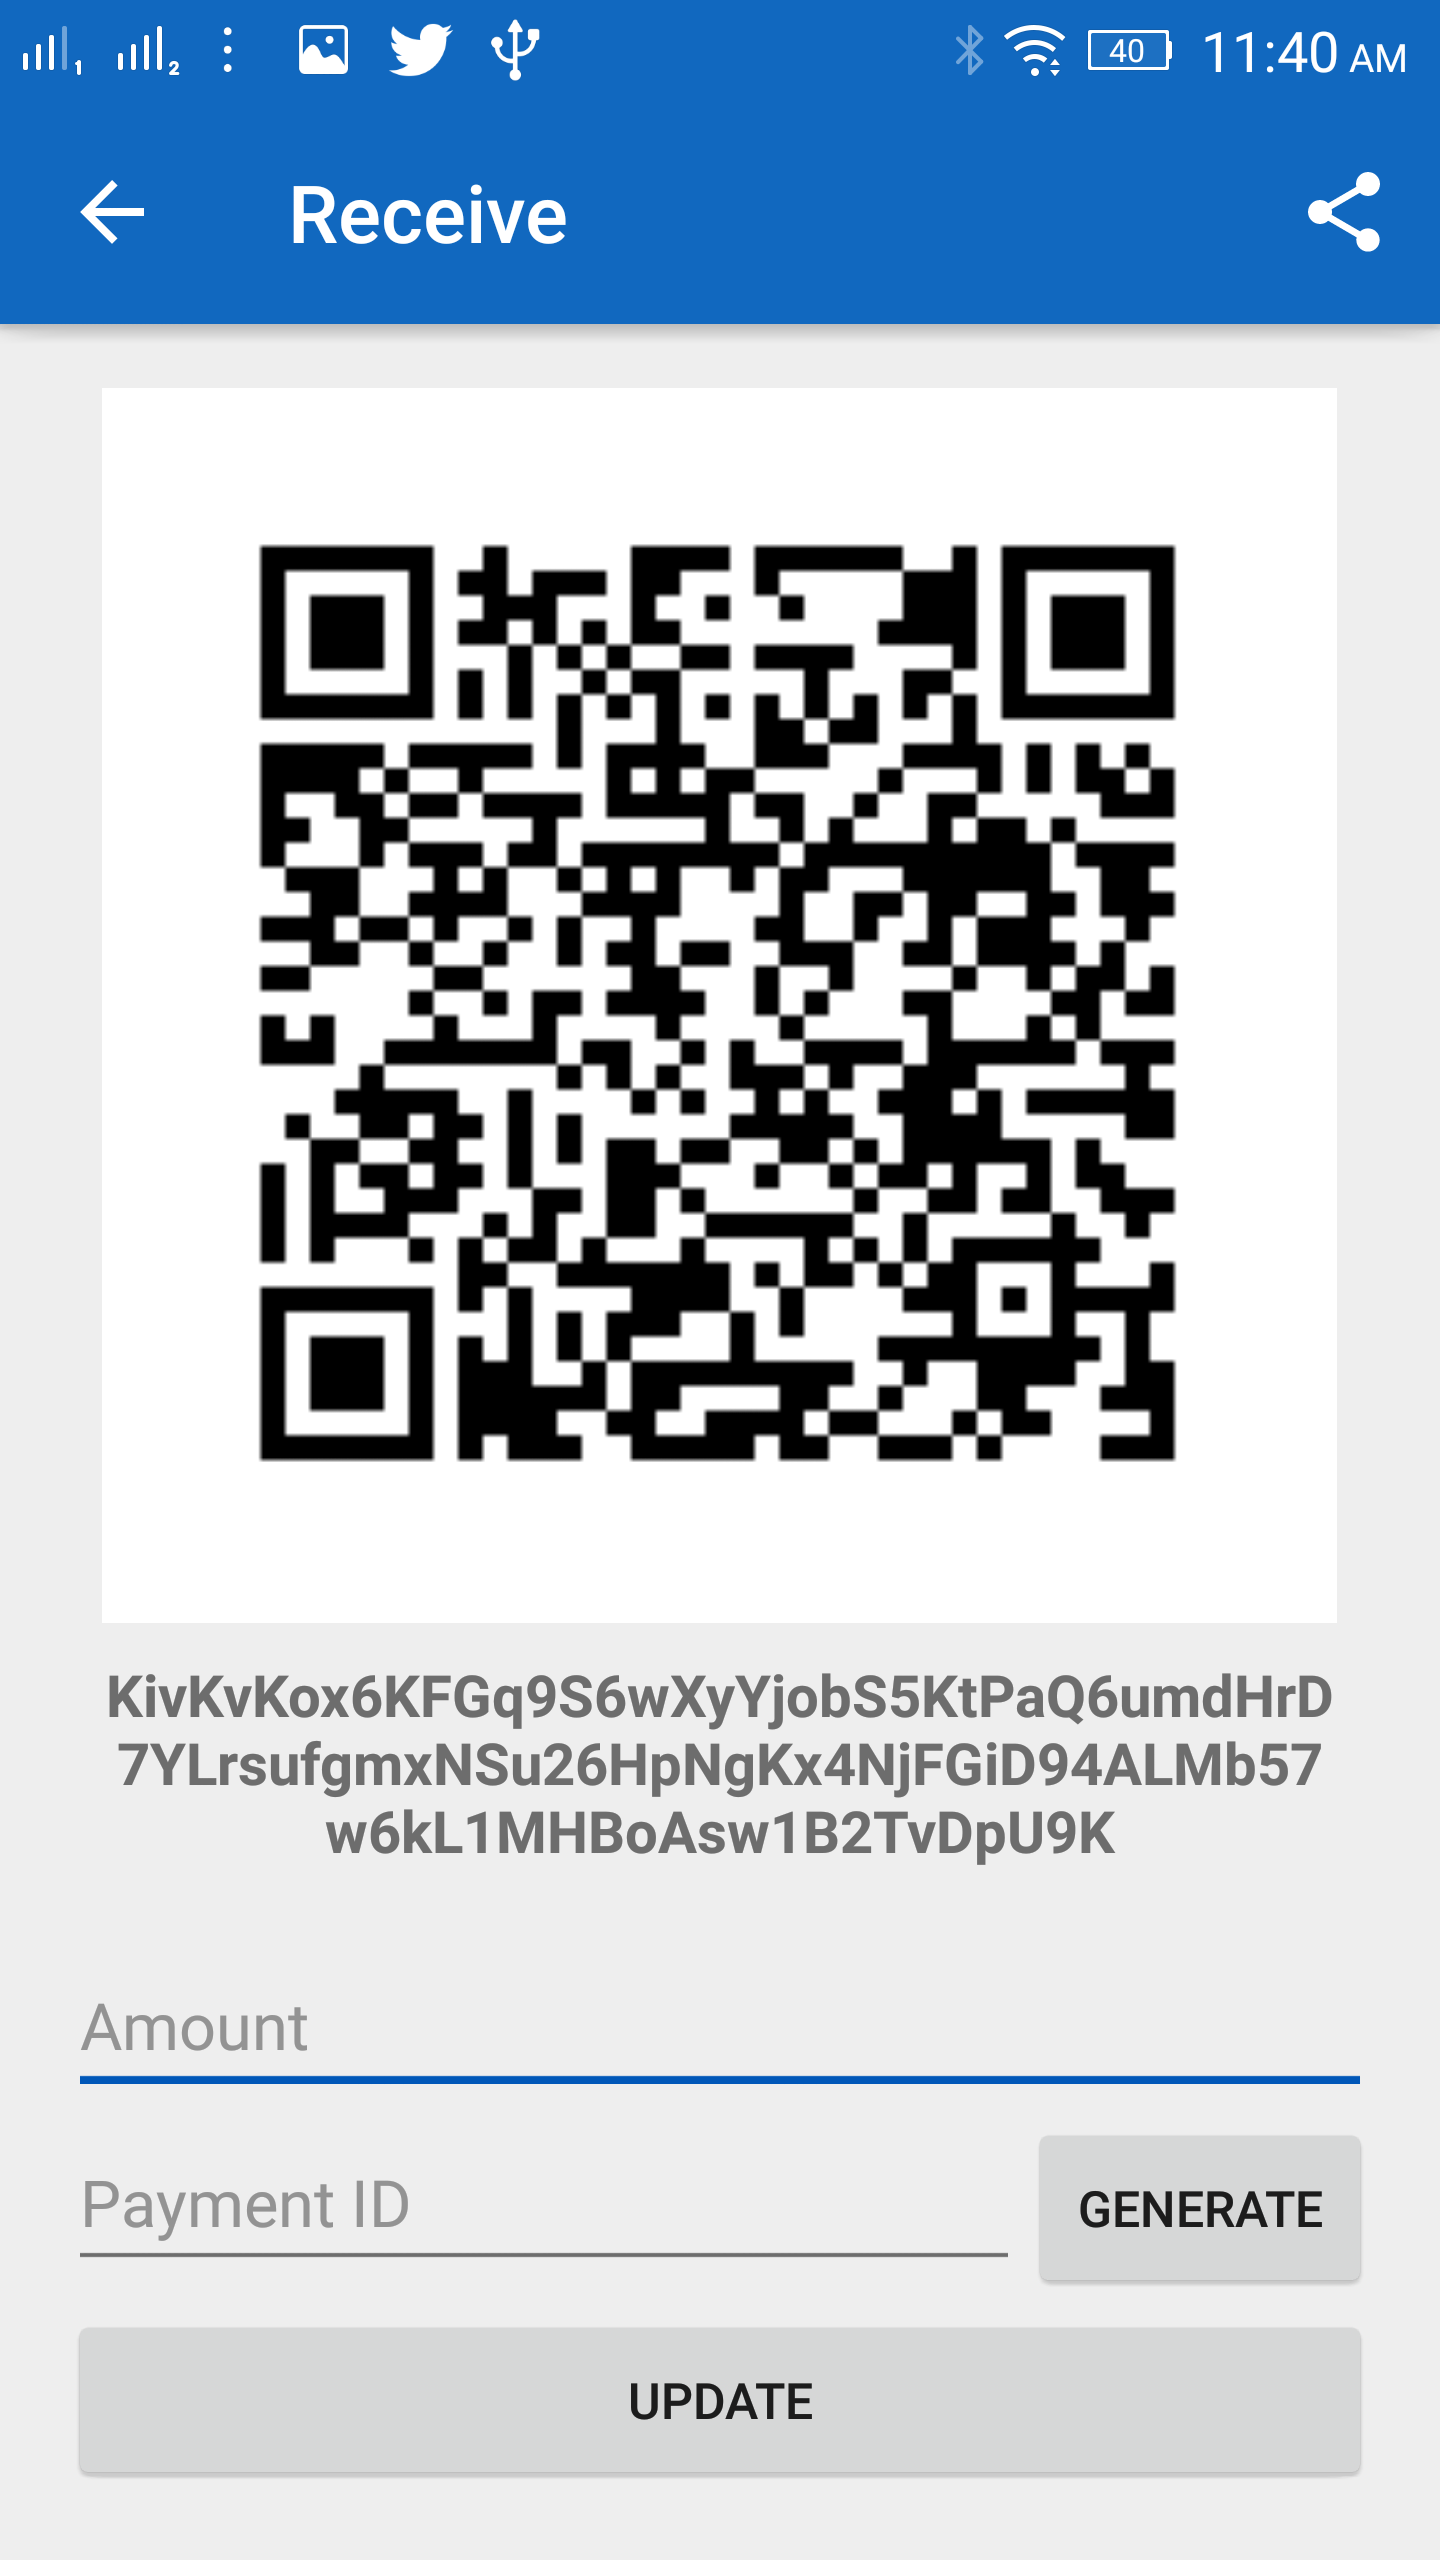 Mobile Wallet App Receive